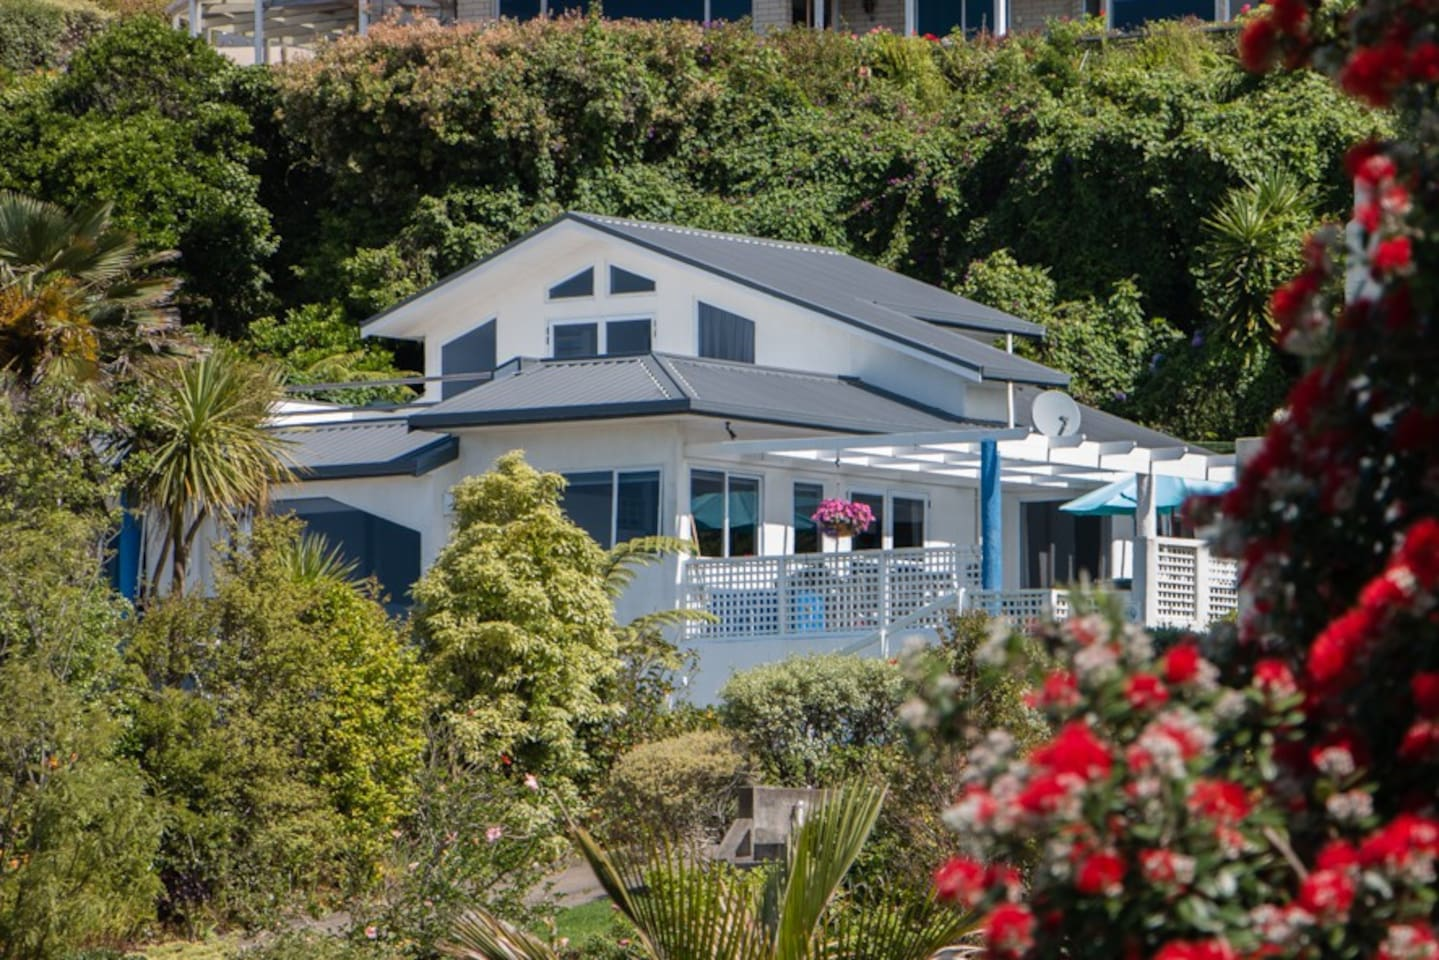 Turney's Beachside Bed and Breakfast